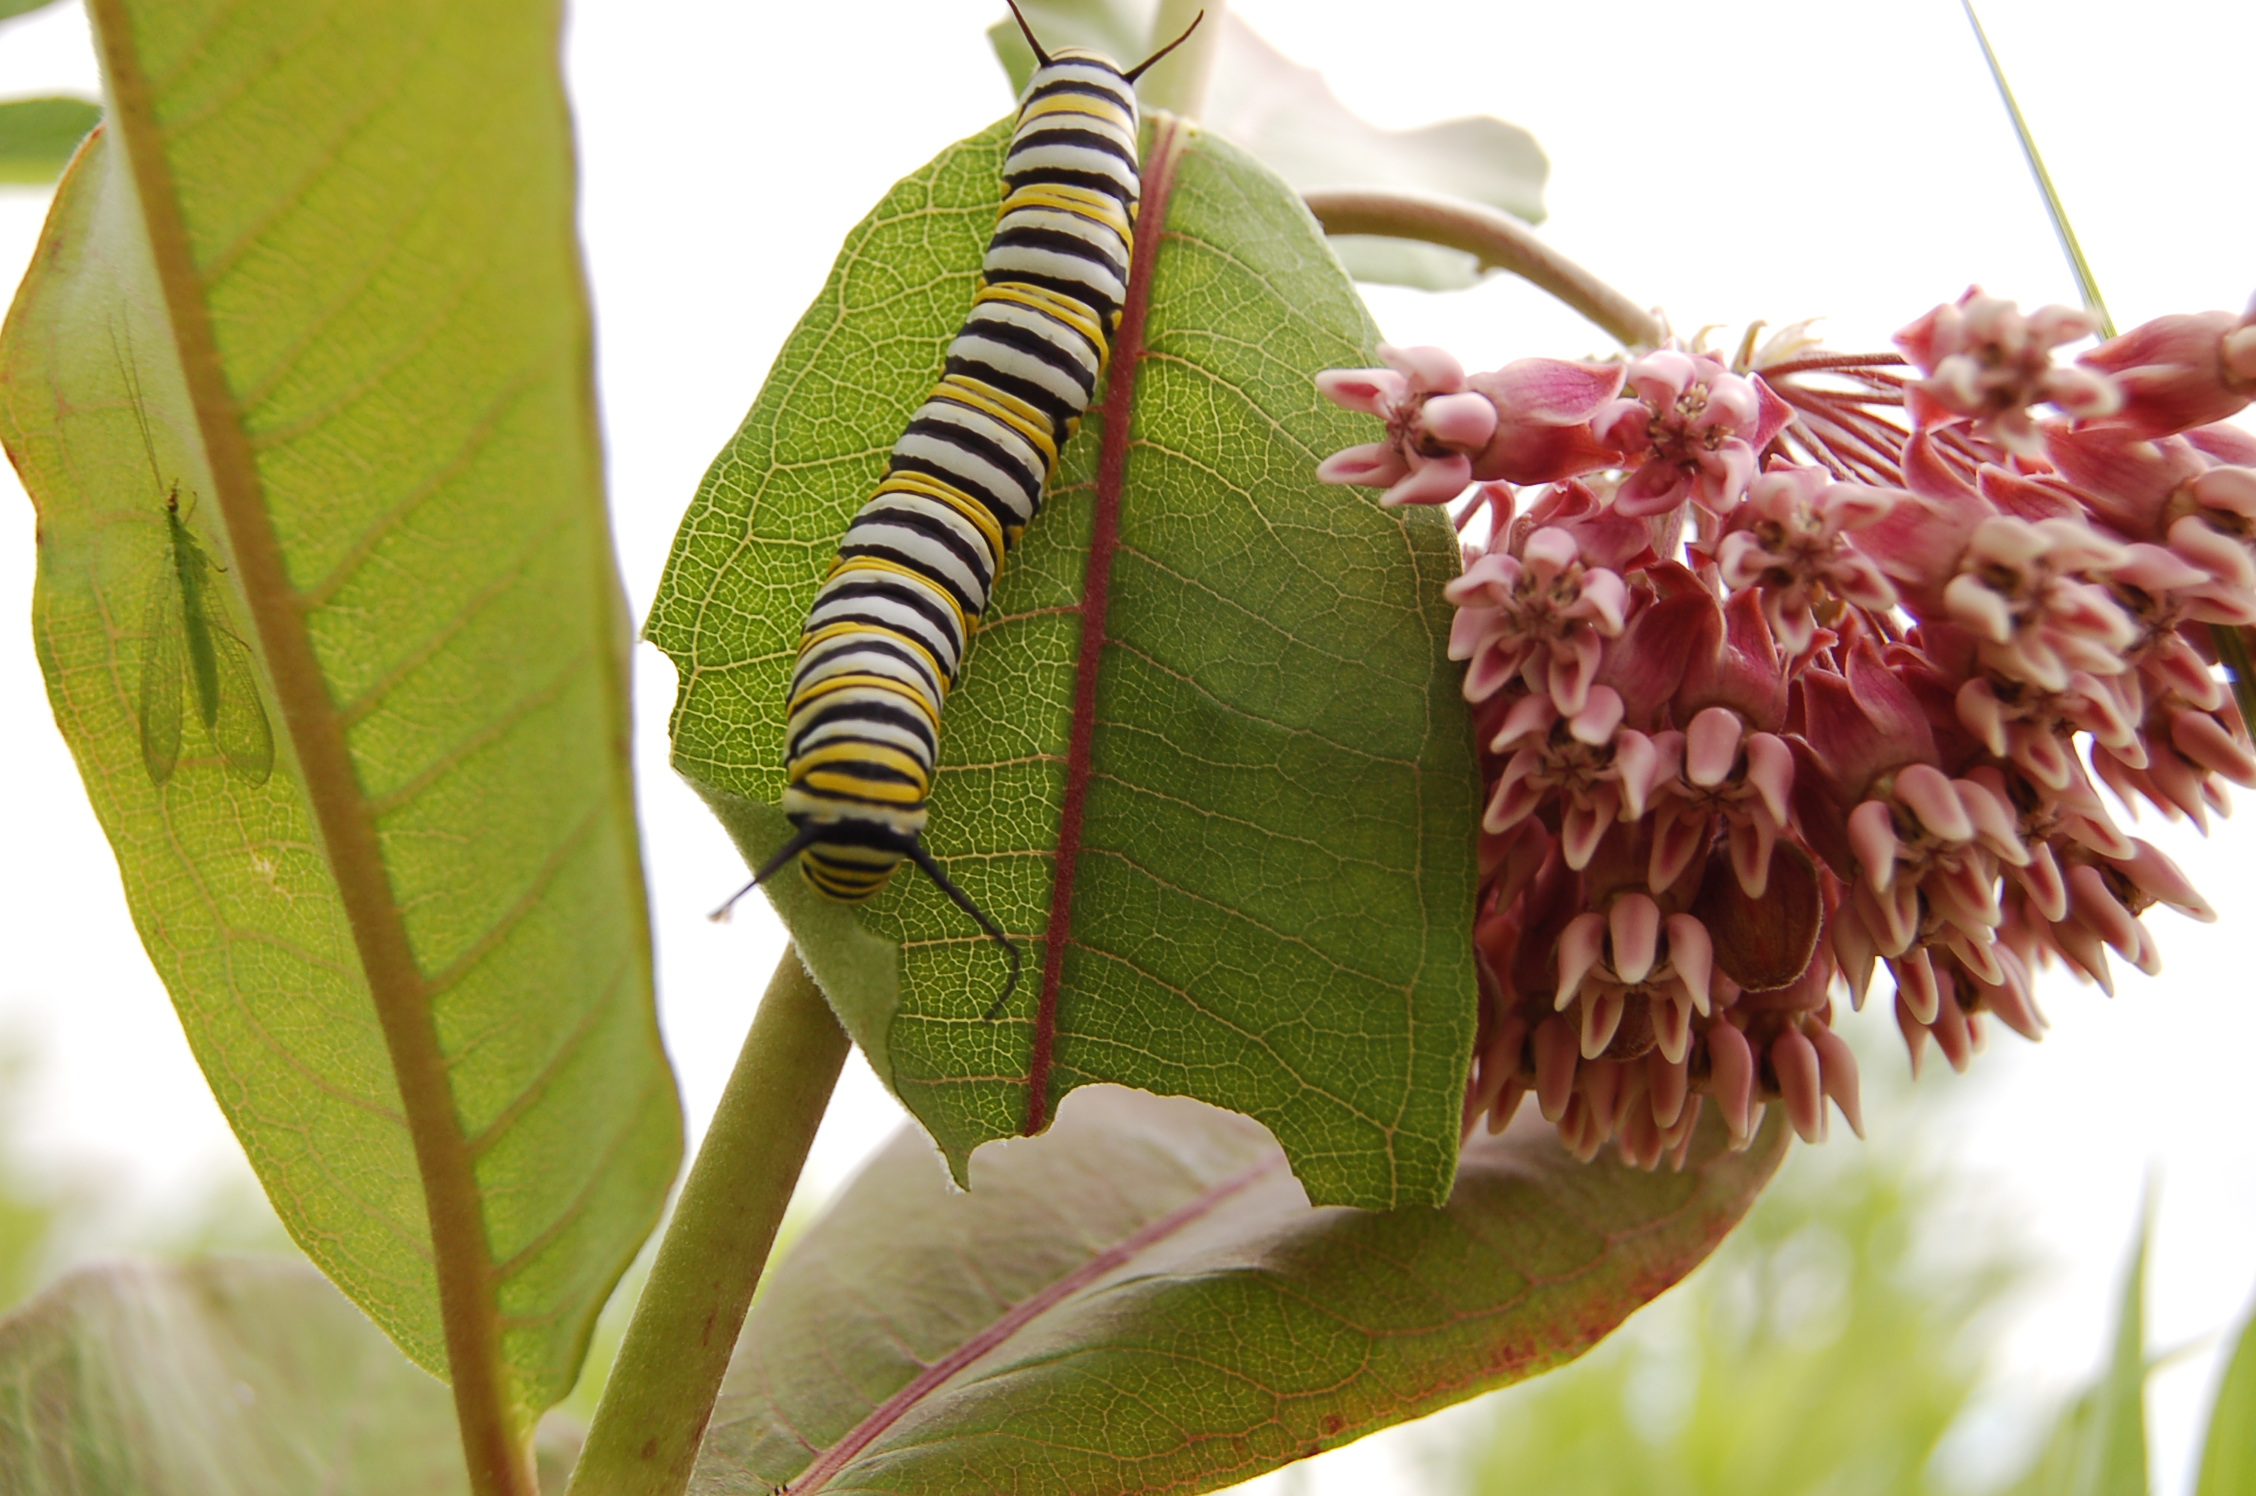 A monarch caterpillar finds food and shelter on common milkweed